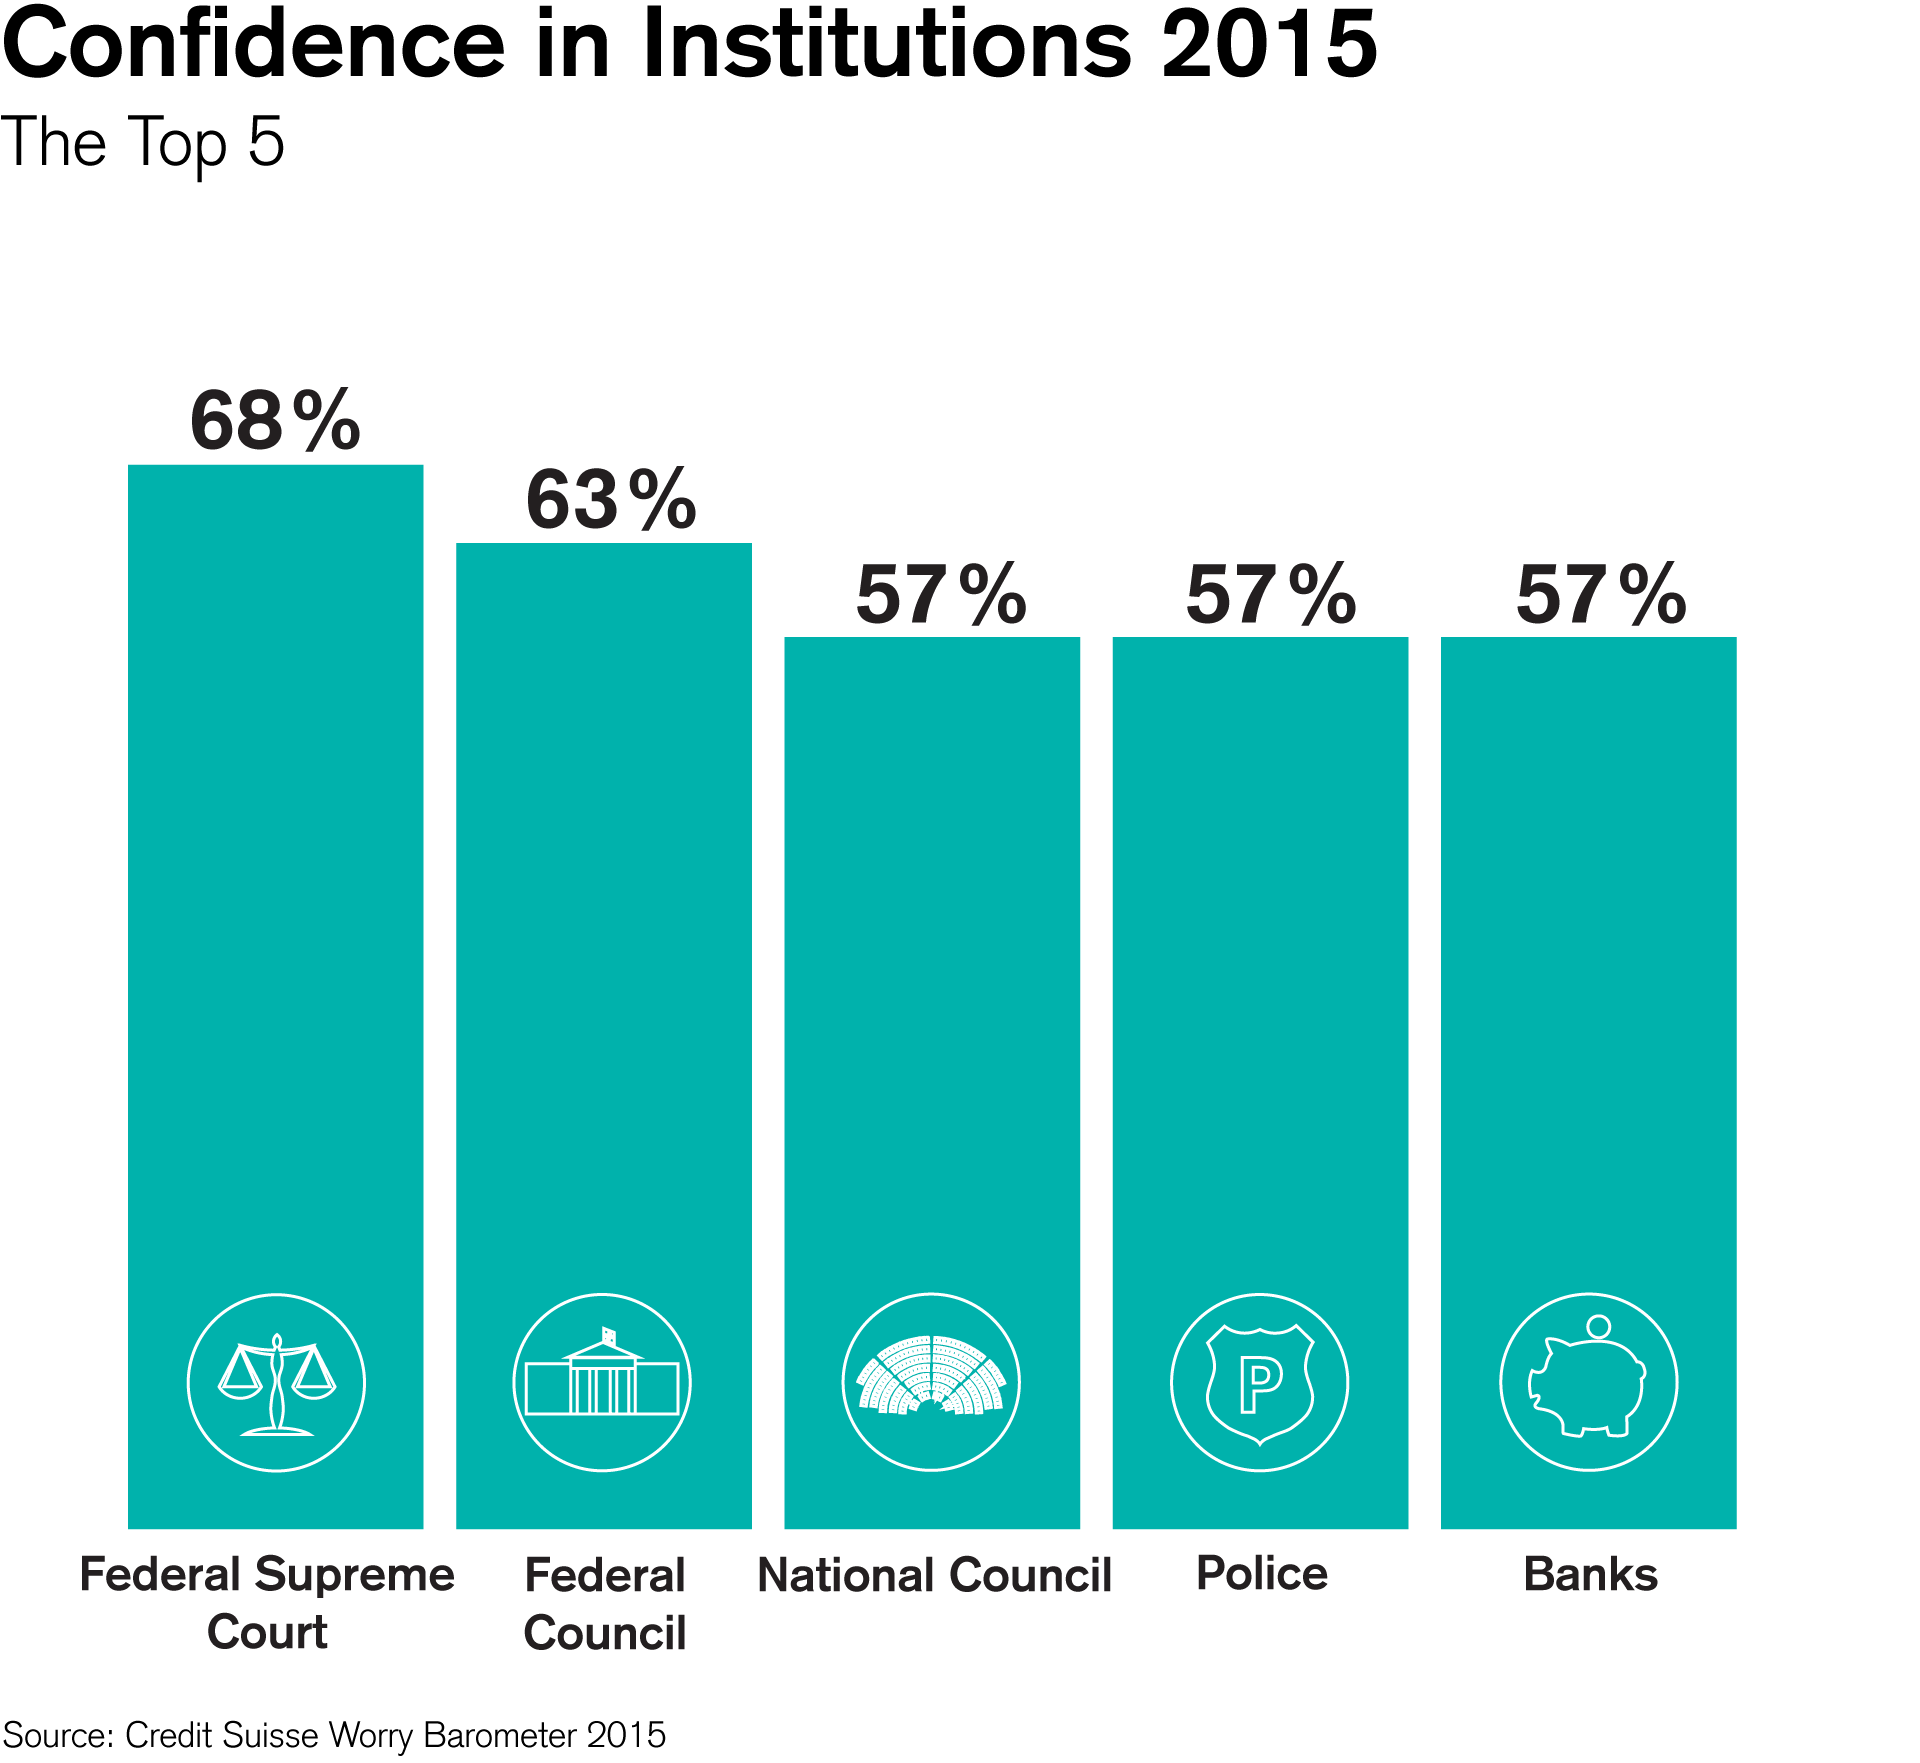 Confidence in Institutions 2015